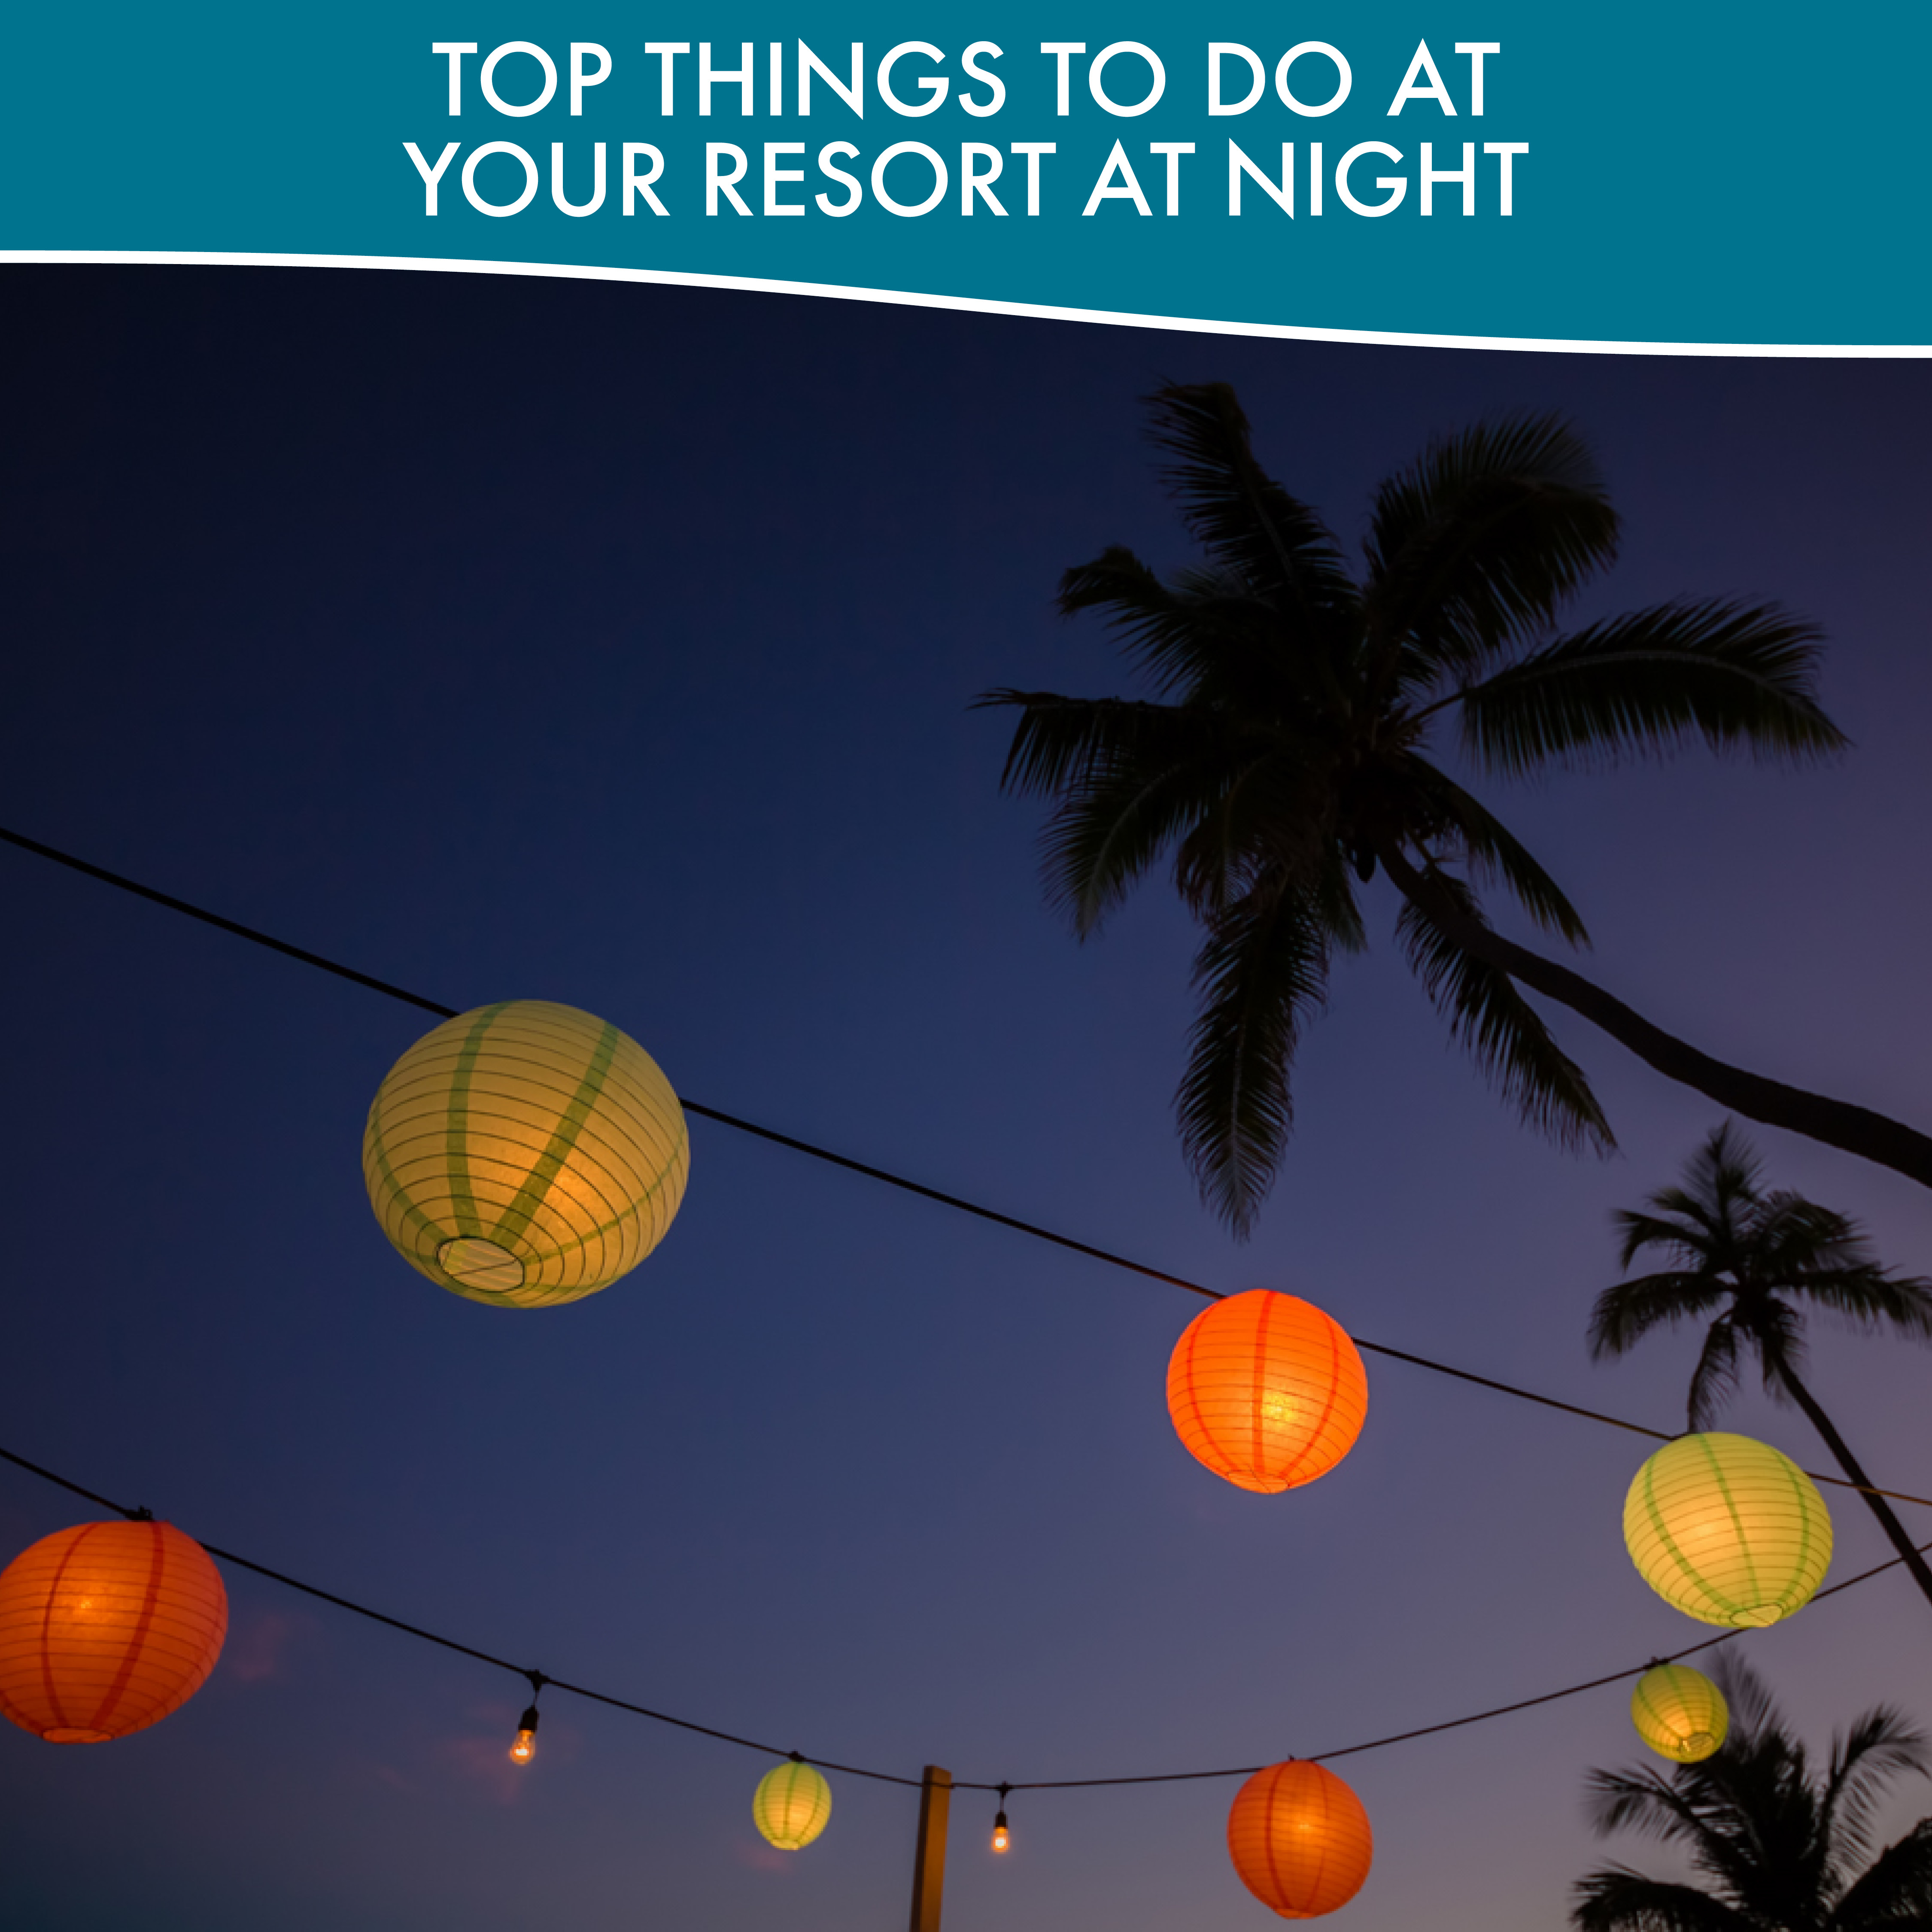 Top Things To Do At Your Resort At Night_Opt1_BlogHeader